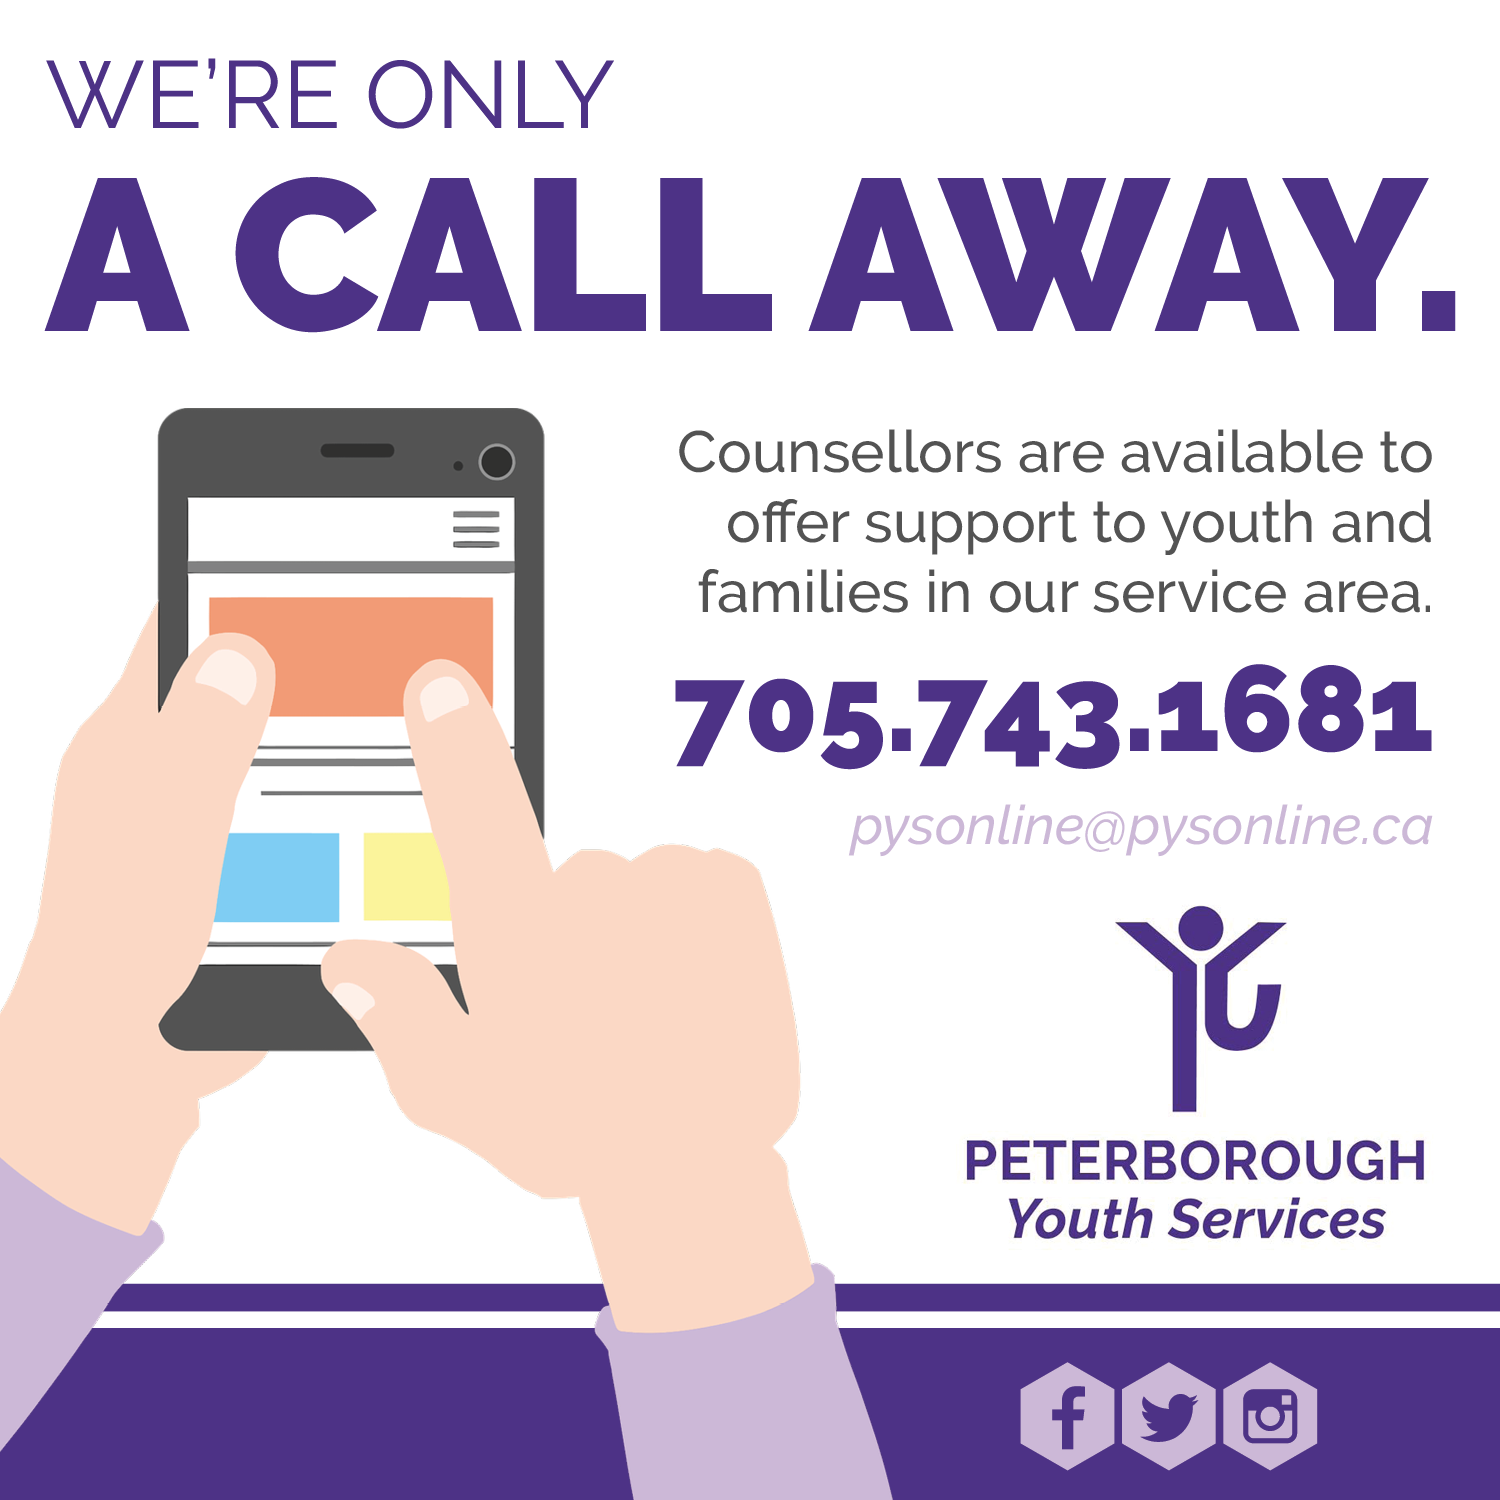 Peterborough Youth Services